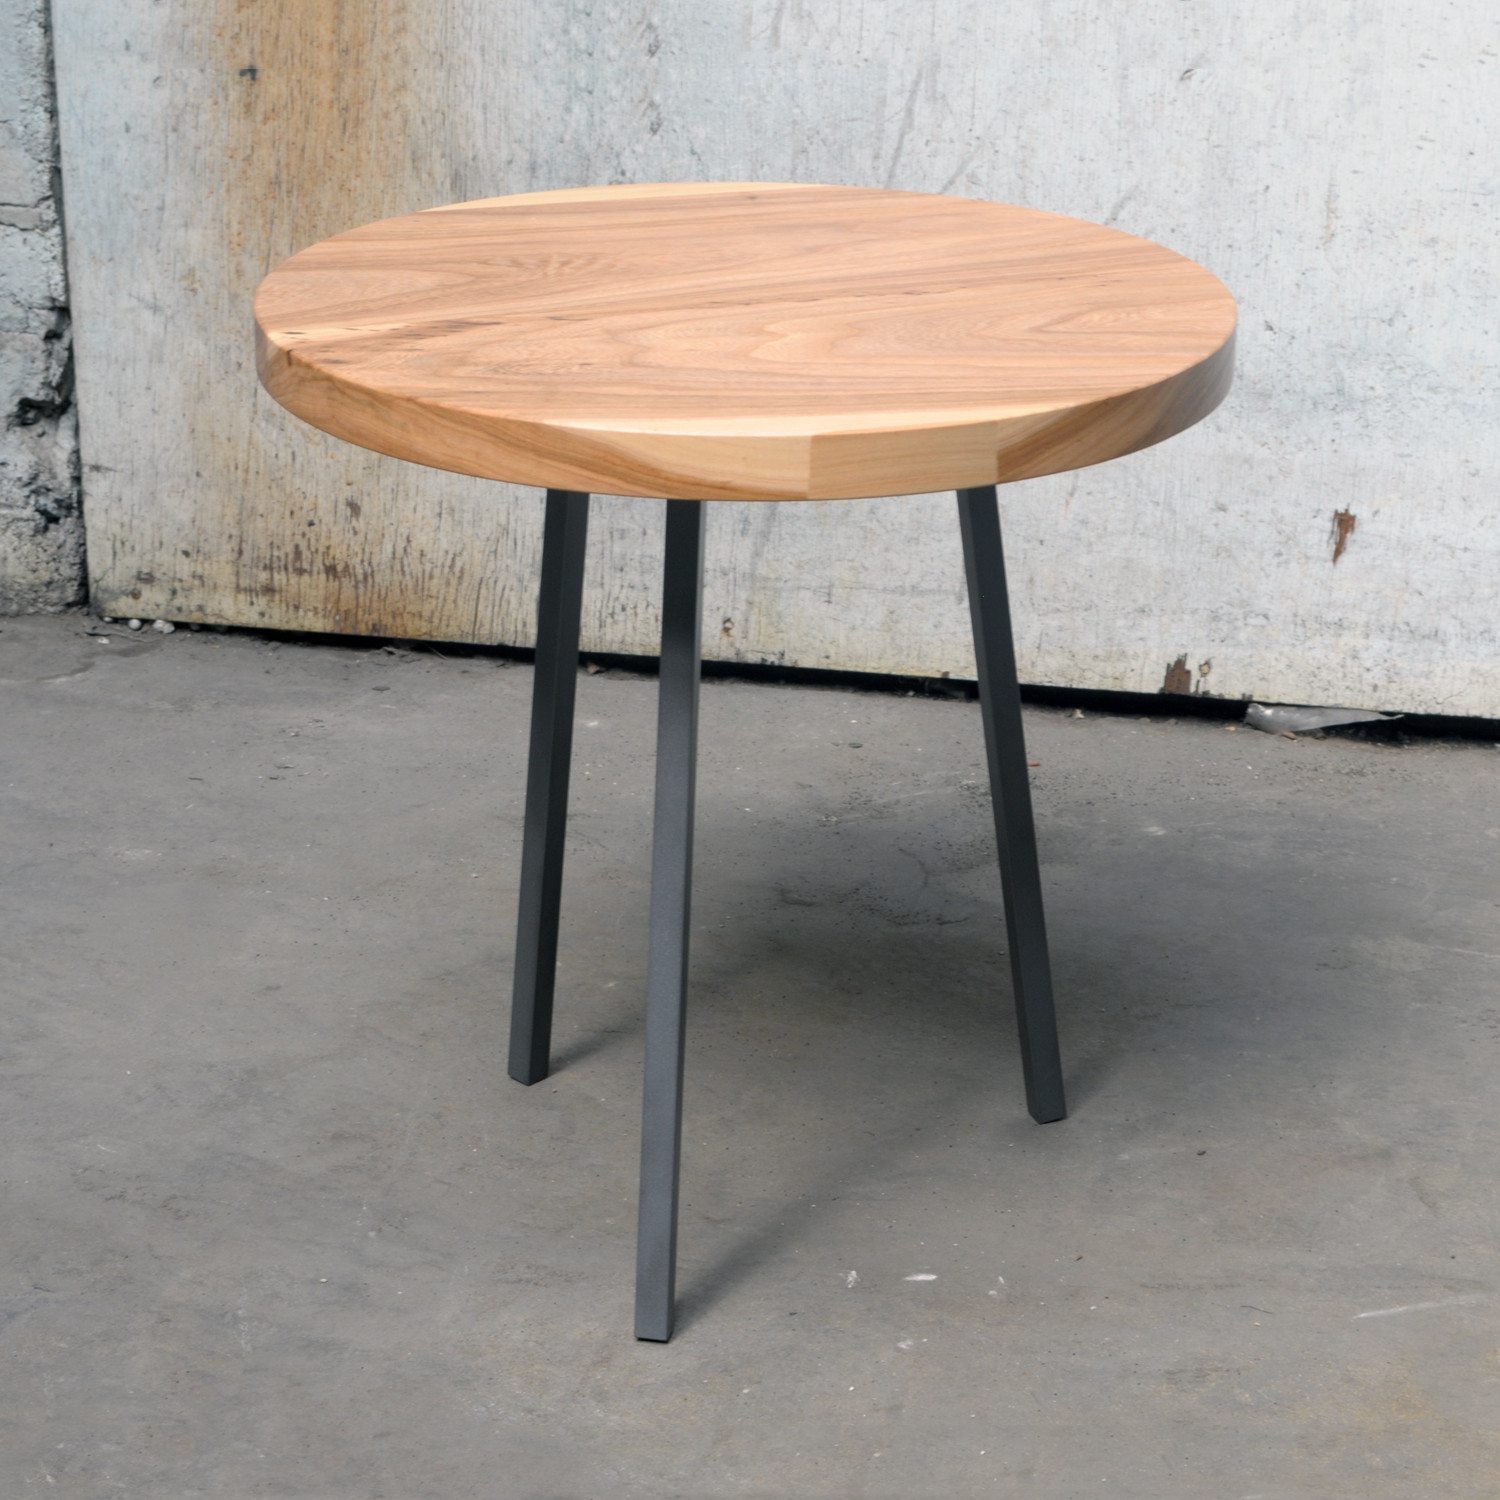 Charming Little Round Table (Walnut Top + White Legs)